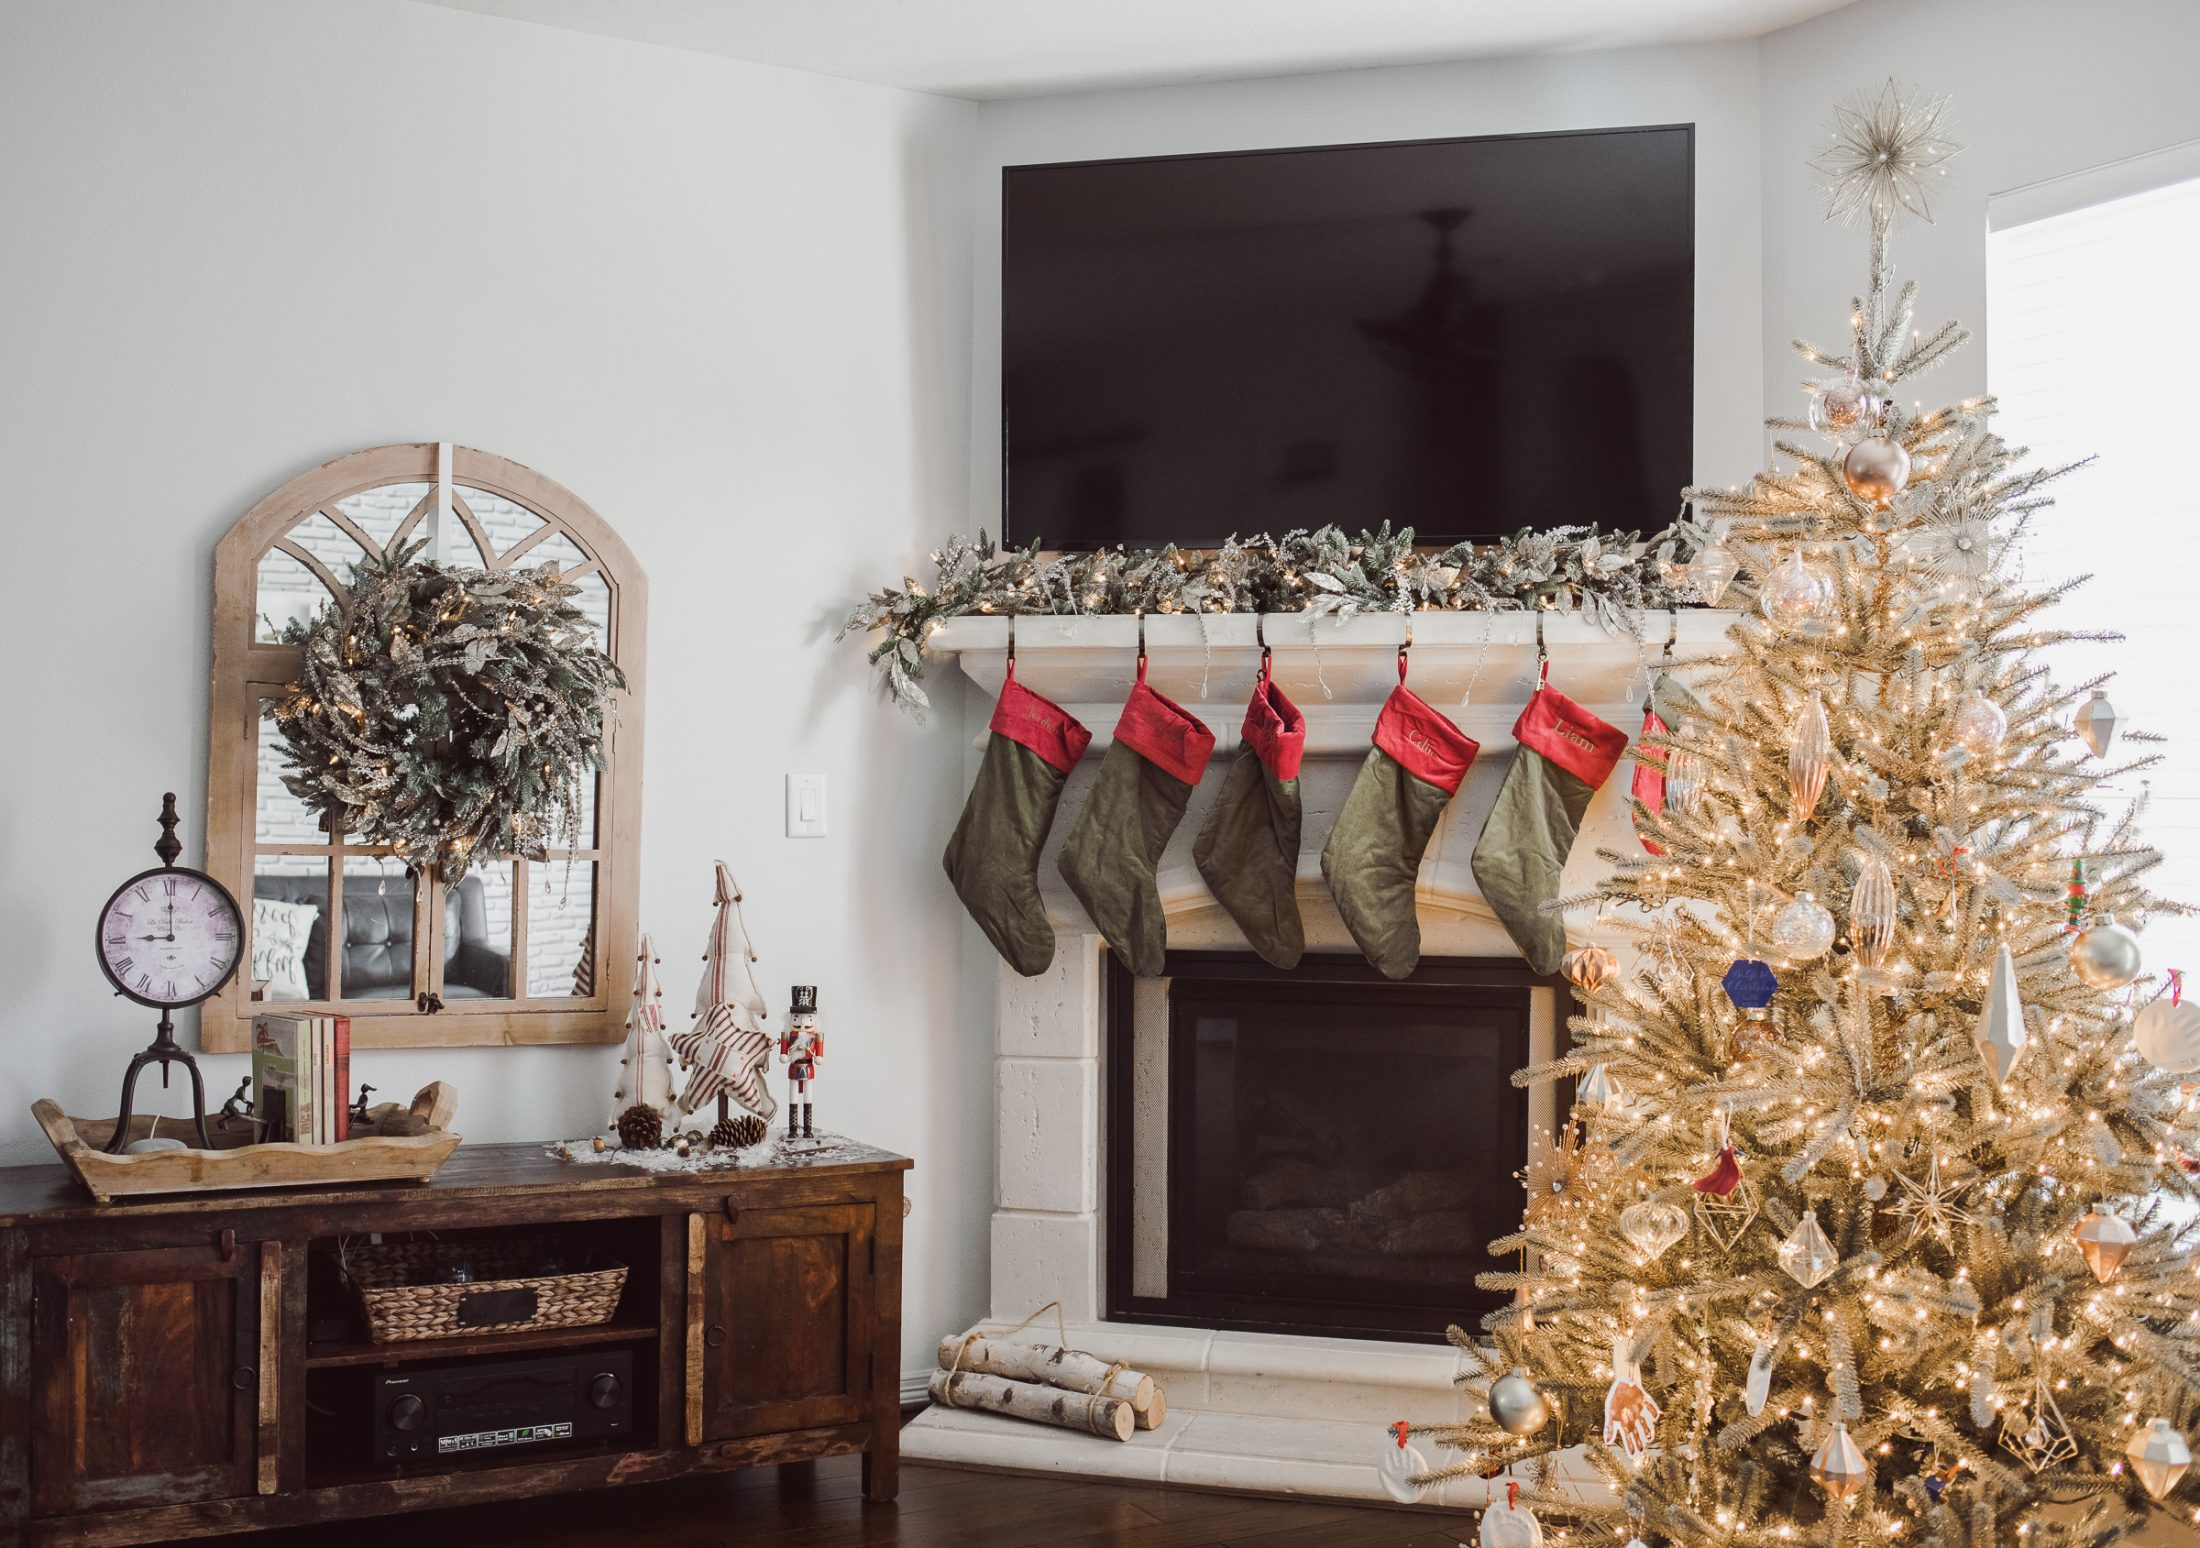 Houston lifestyle blogger Uptown with Elly Brown shares Christmas Decorations in her living room